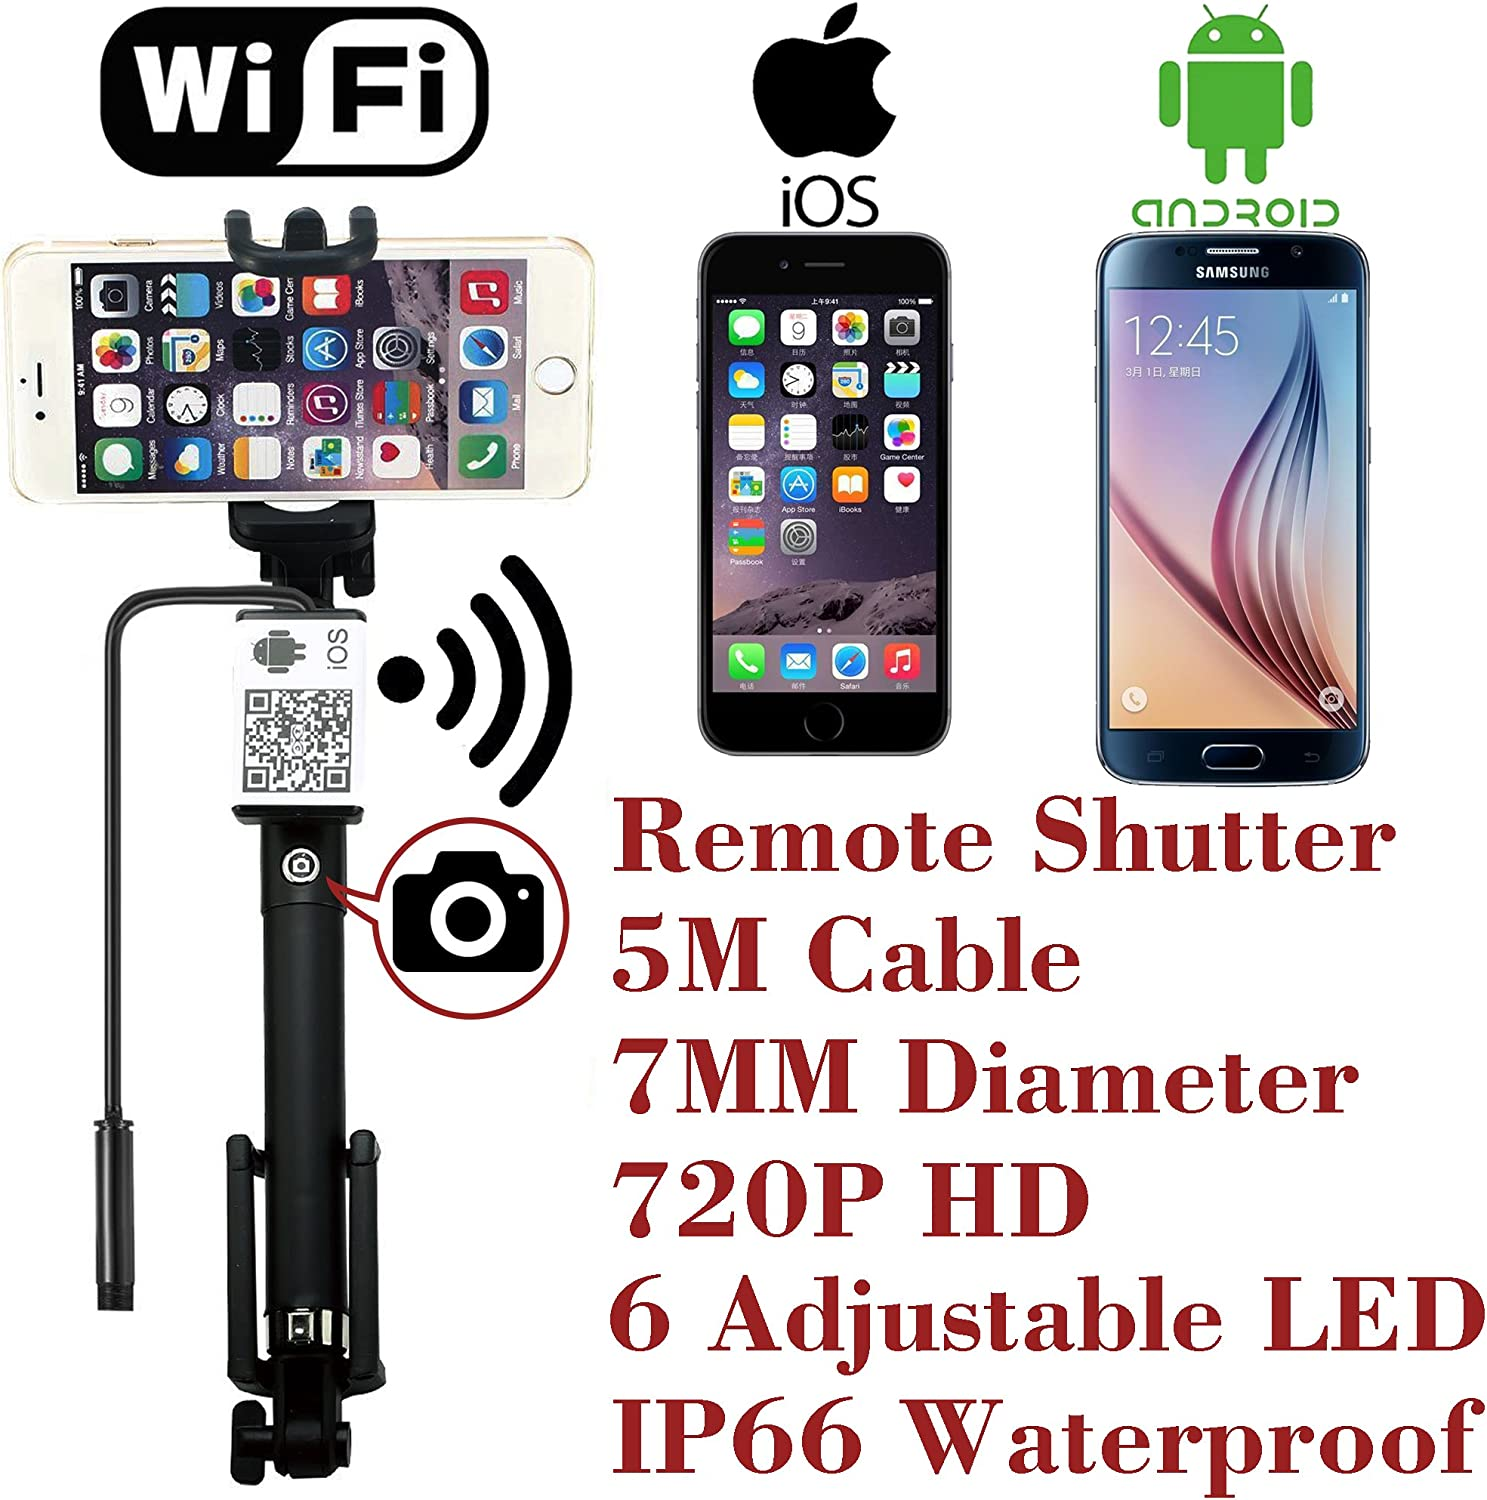 Upgraded WiFi Wireless Endoscope Built-in Remote Shutter Borescope 7mm 2MP 6 LED 720P IP66 Tube Waterproof Snake Inspection Camera System, for iPhone iOS ipad Samsung Android Smartphone by AttoPro-5M